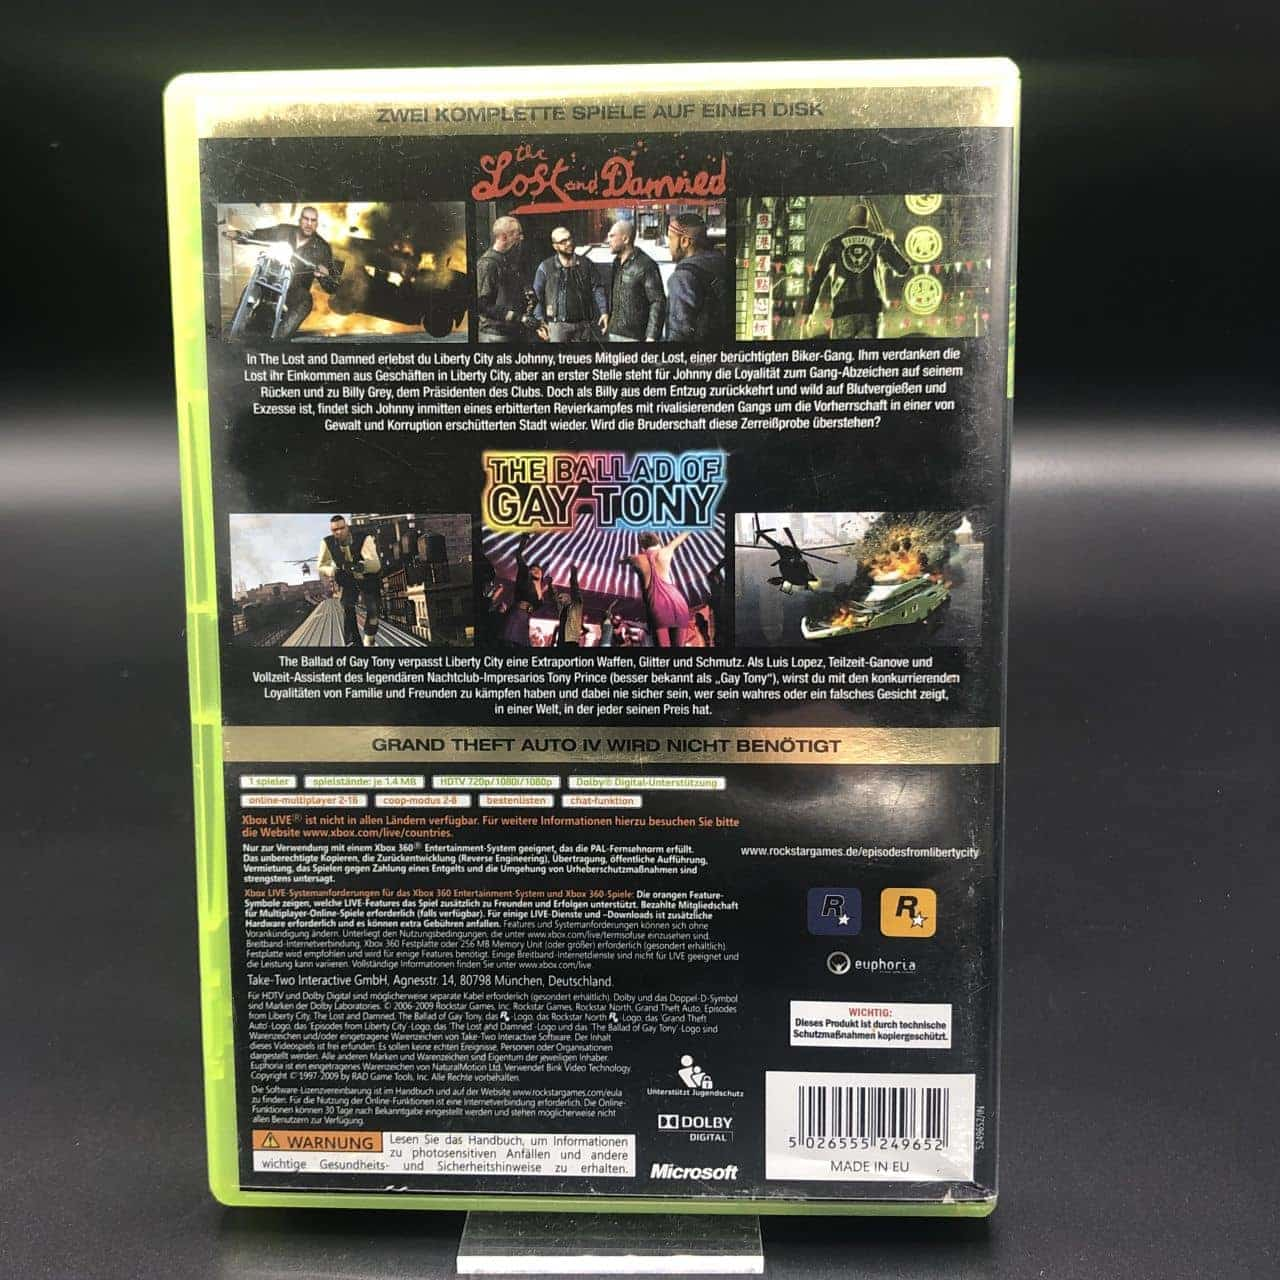 Grand Theft Auto: Episodes from Liberty City (Komplett) (Sehr gut) XBOX 360 (FSK18)